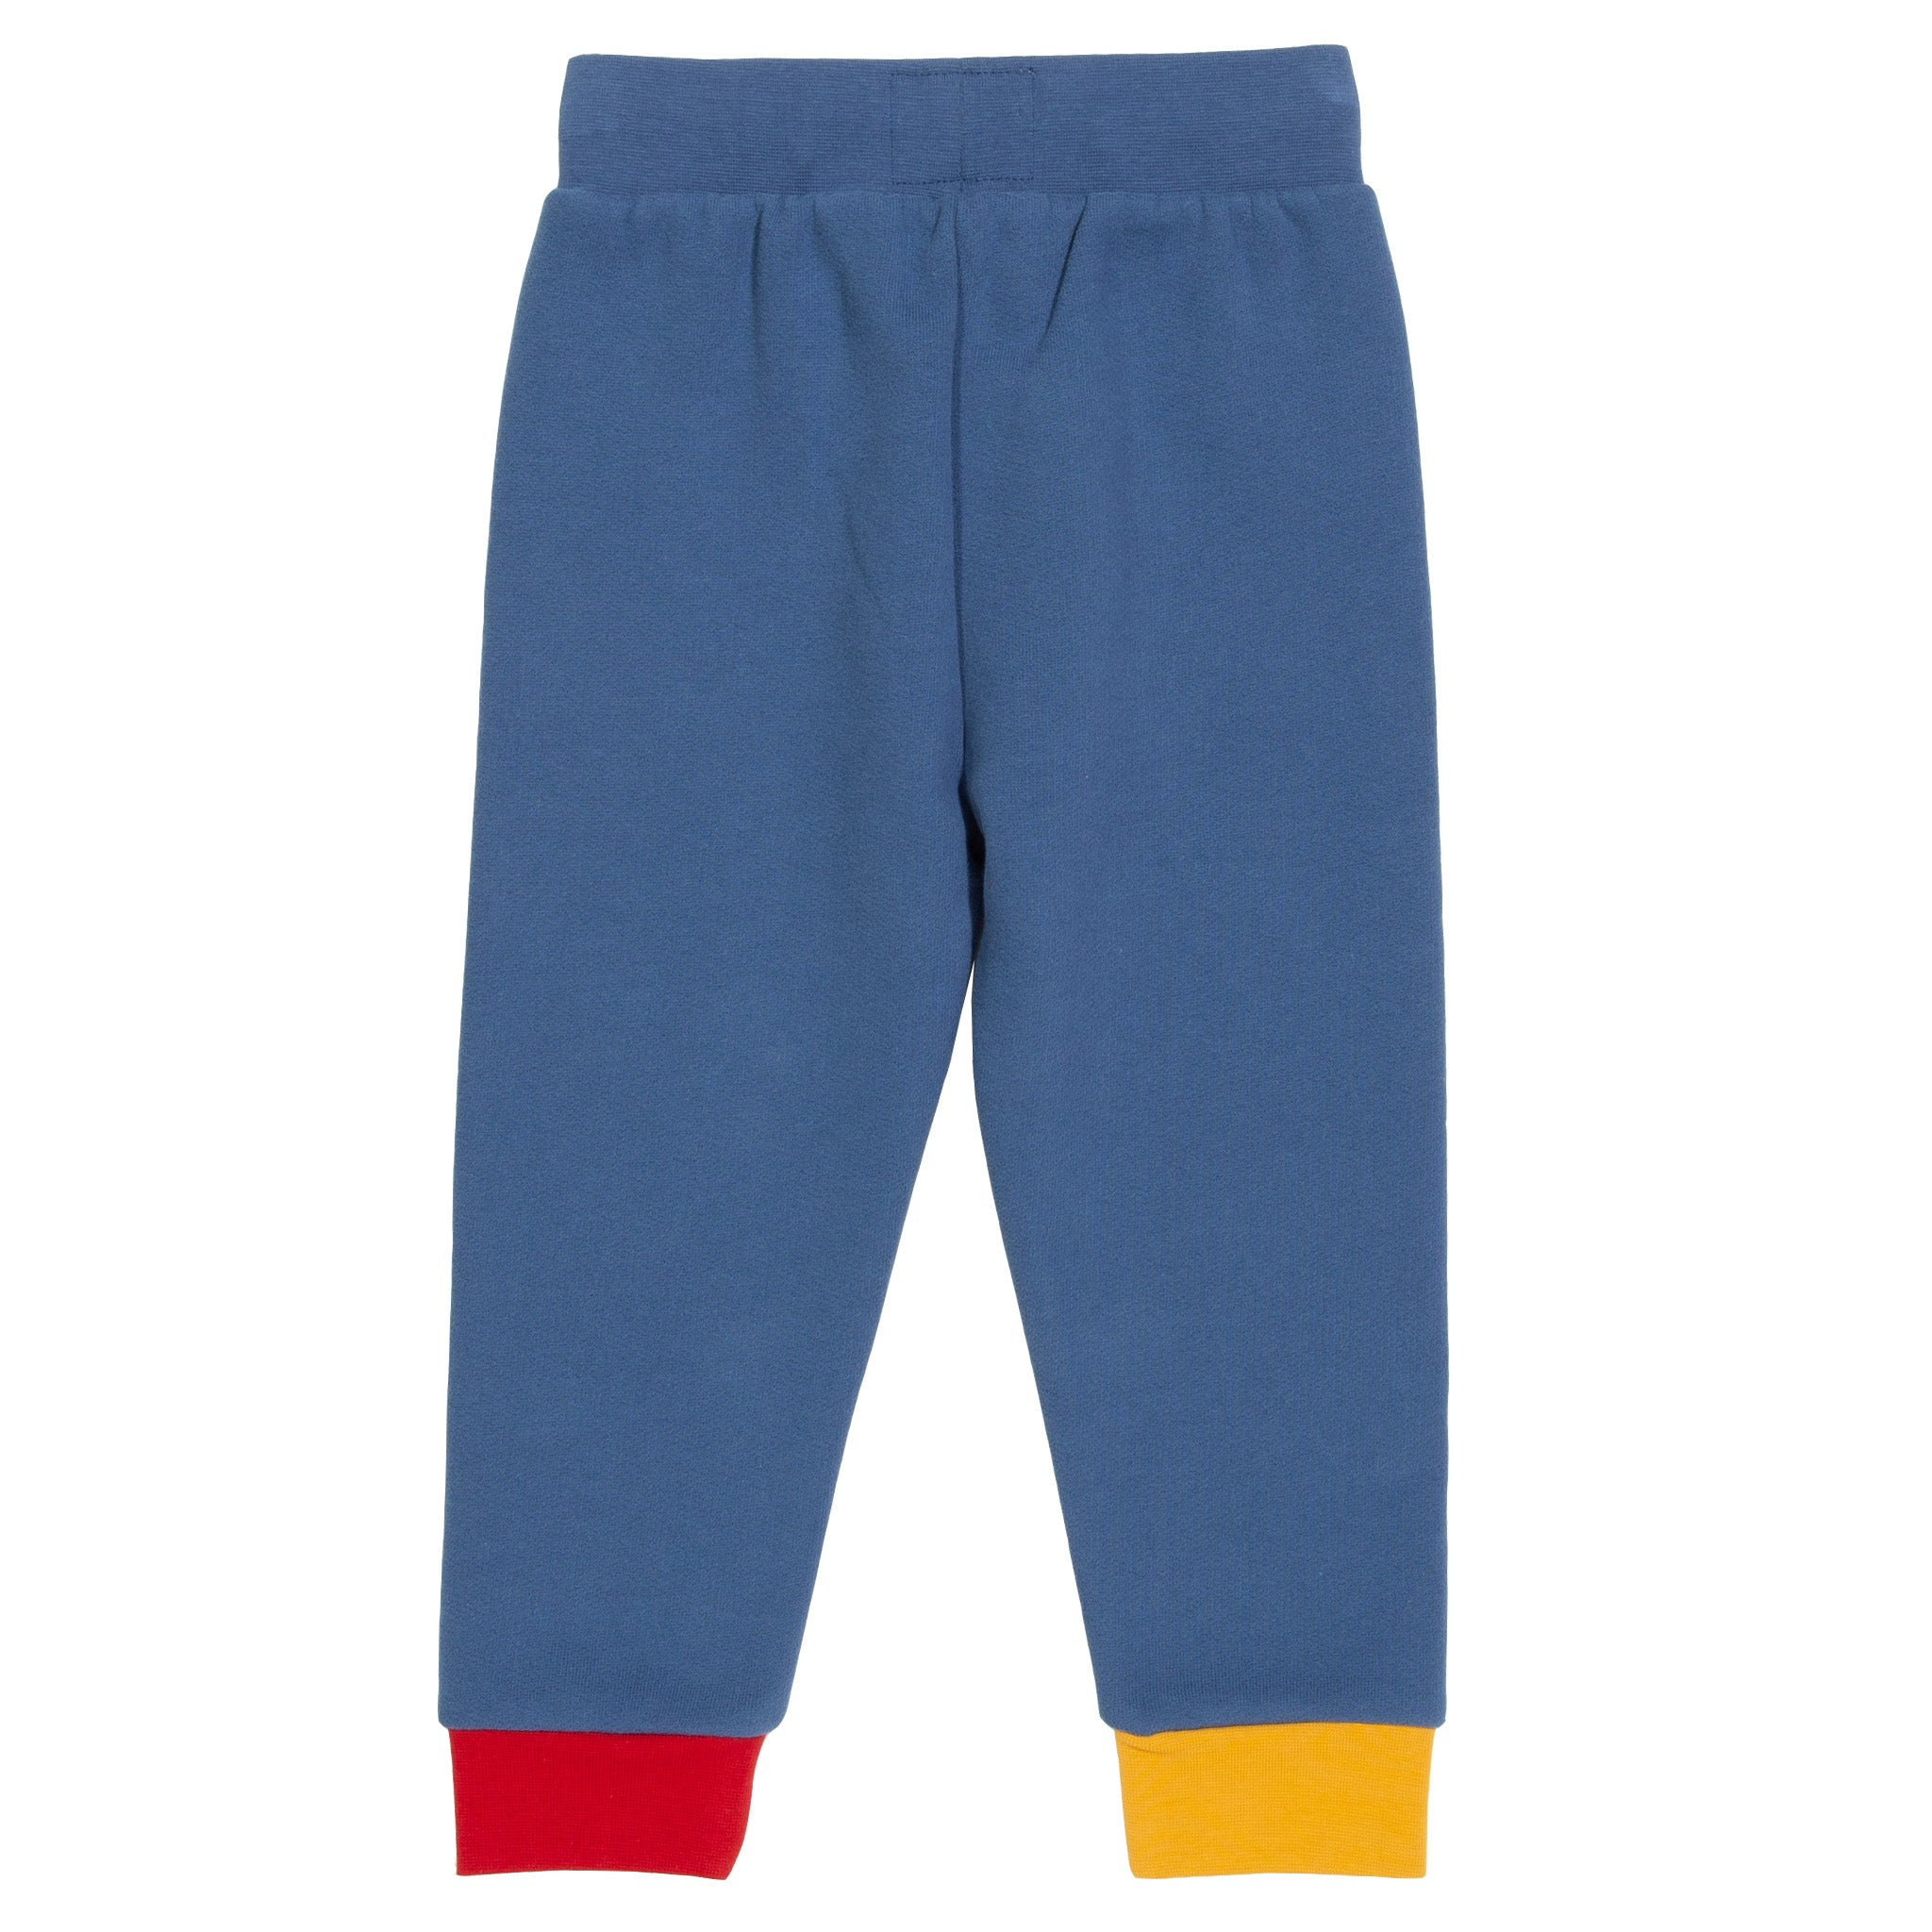 Kite Knee patch joggers navy - The Mango Tree